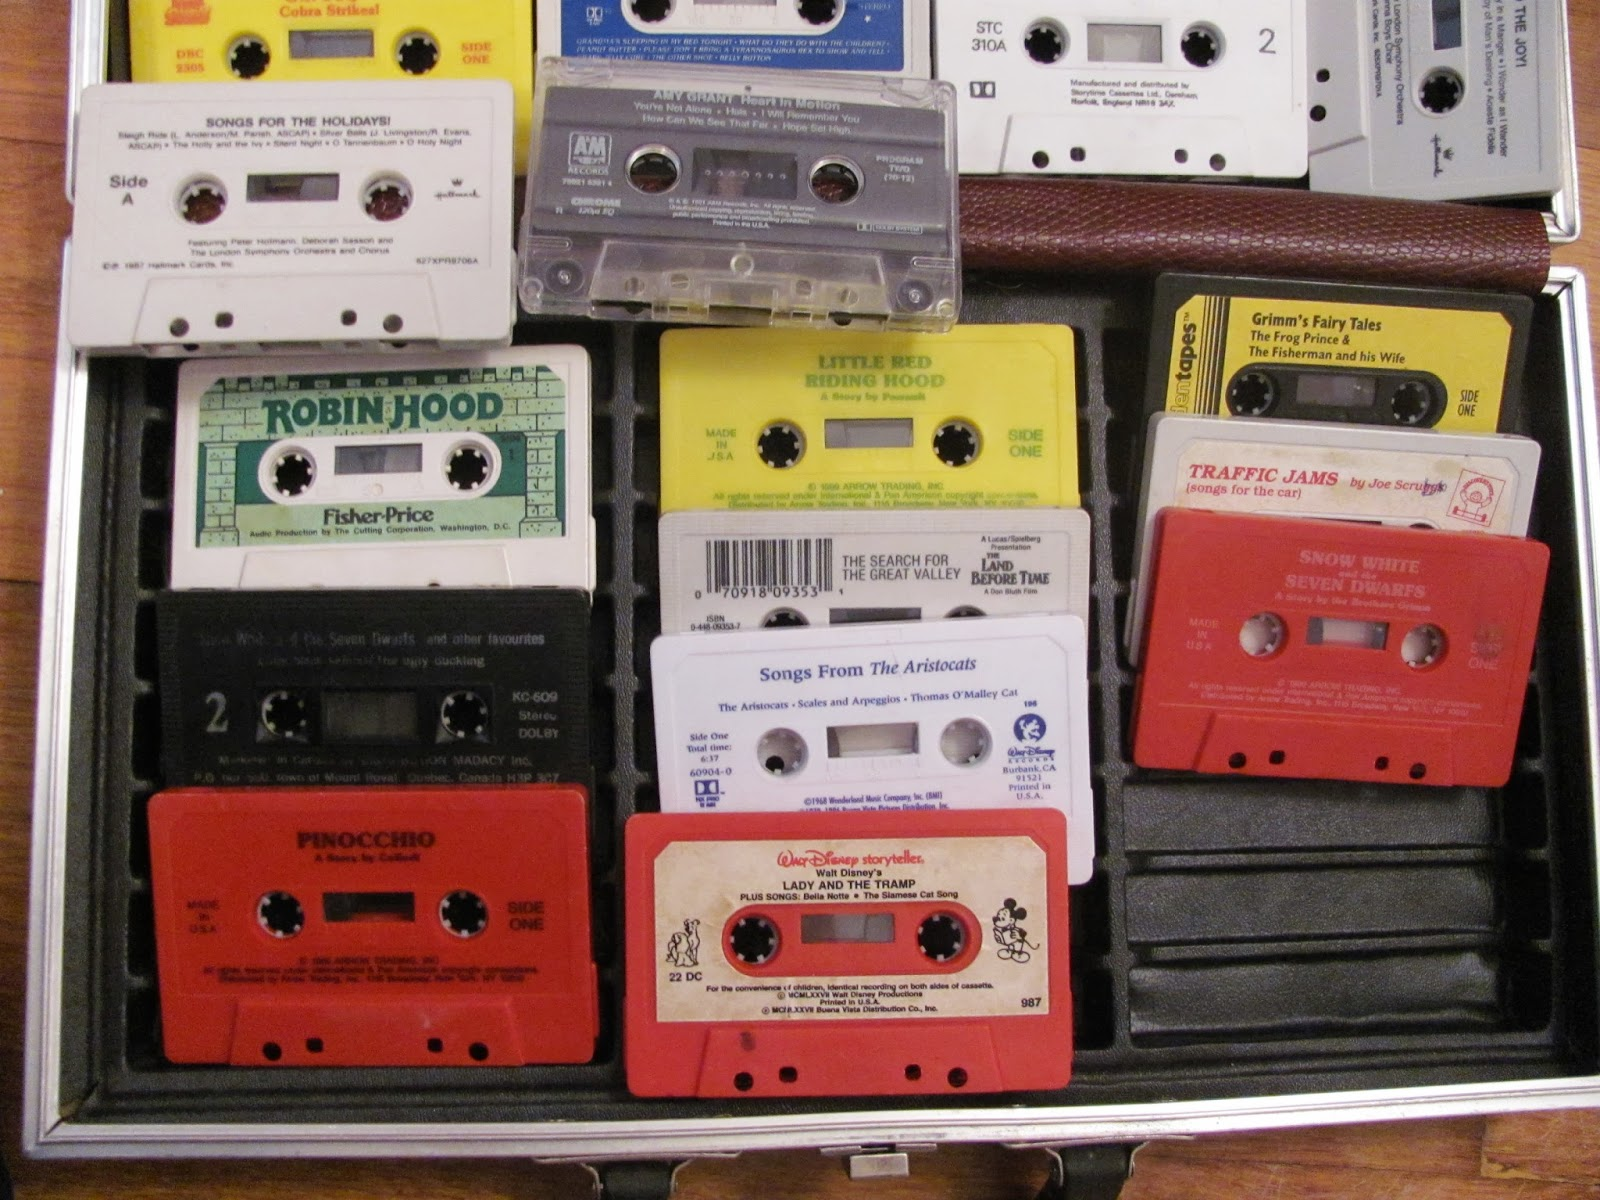 Another view of the case of children's story and song tapes